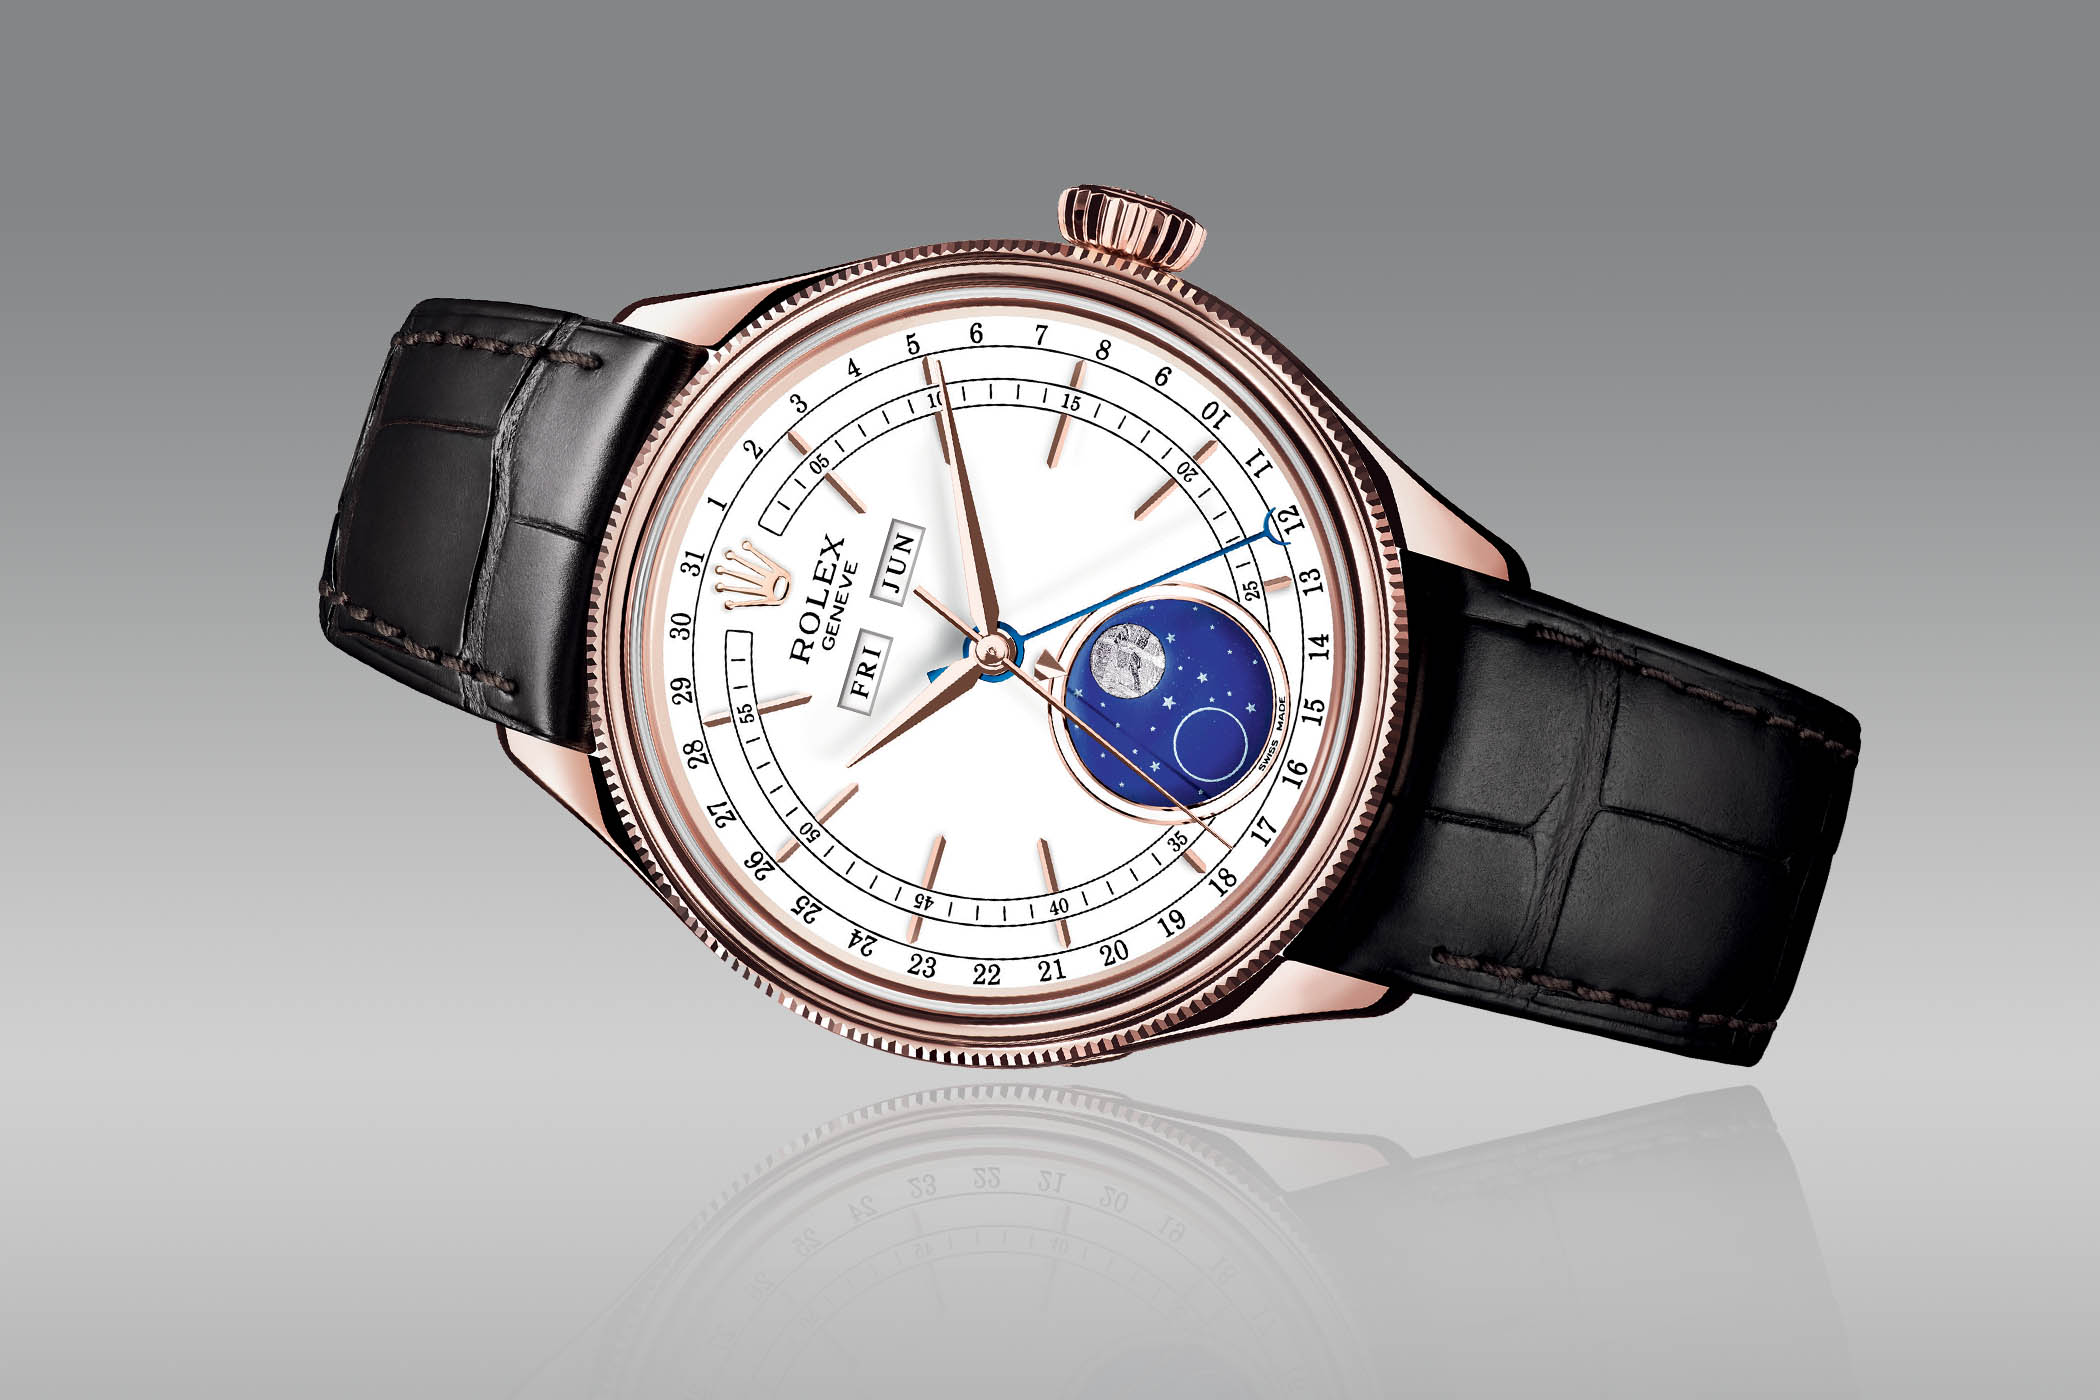 Rolex Cellini Triple Calendar Moonphase - Rolex Baselworld 2018 - Rolex Predictions 2018 - 2